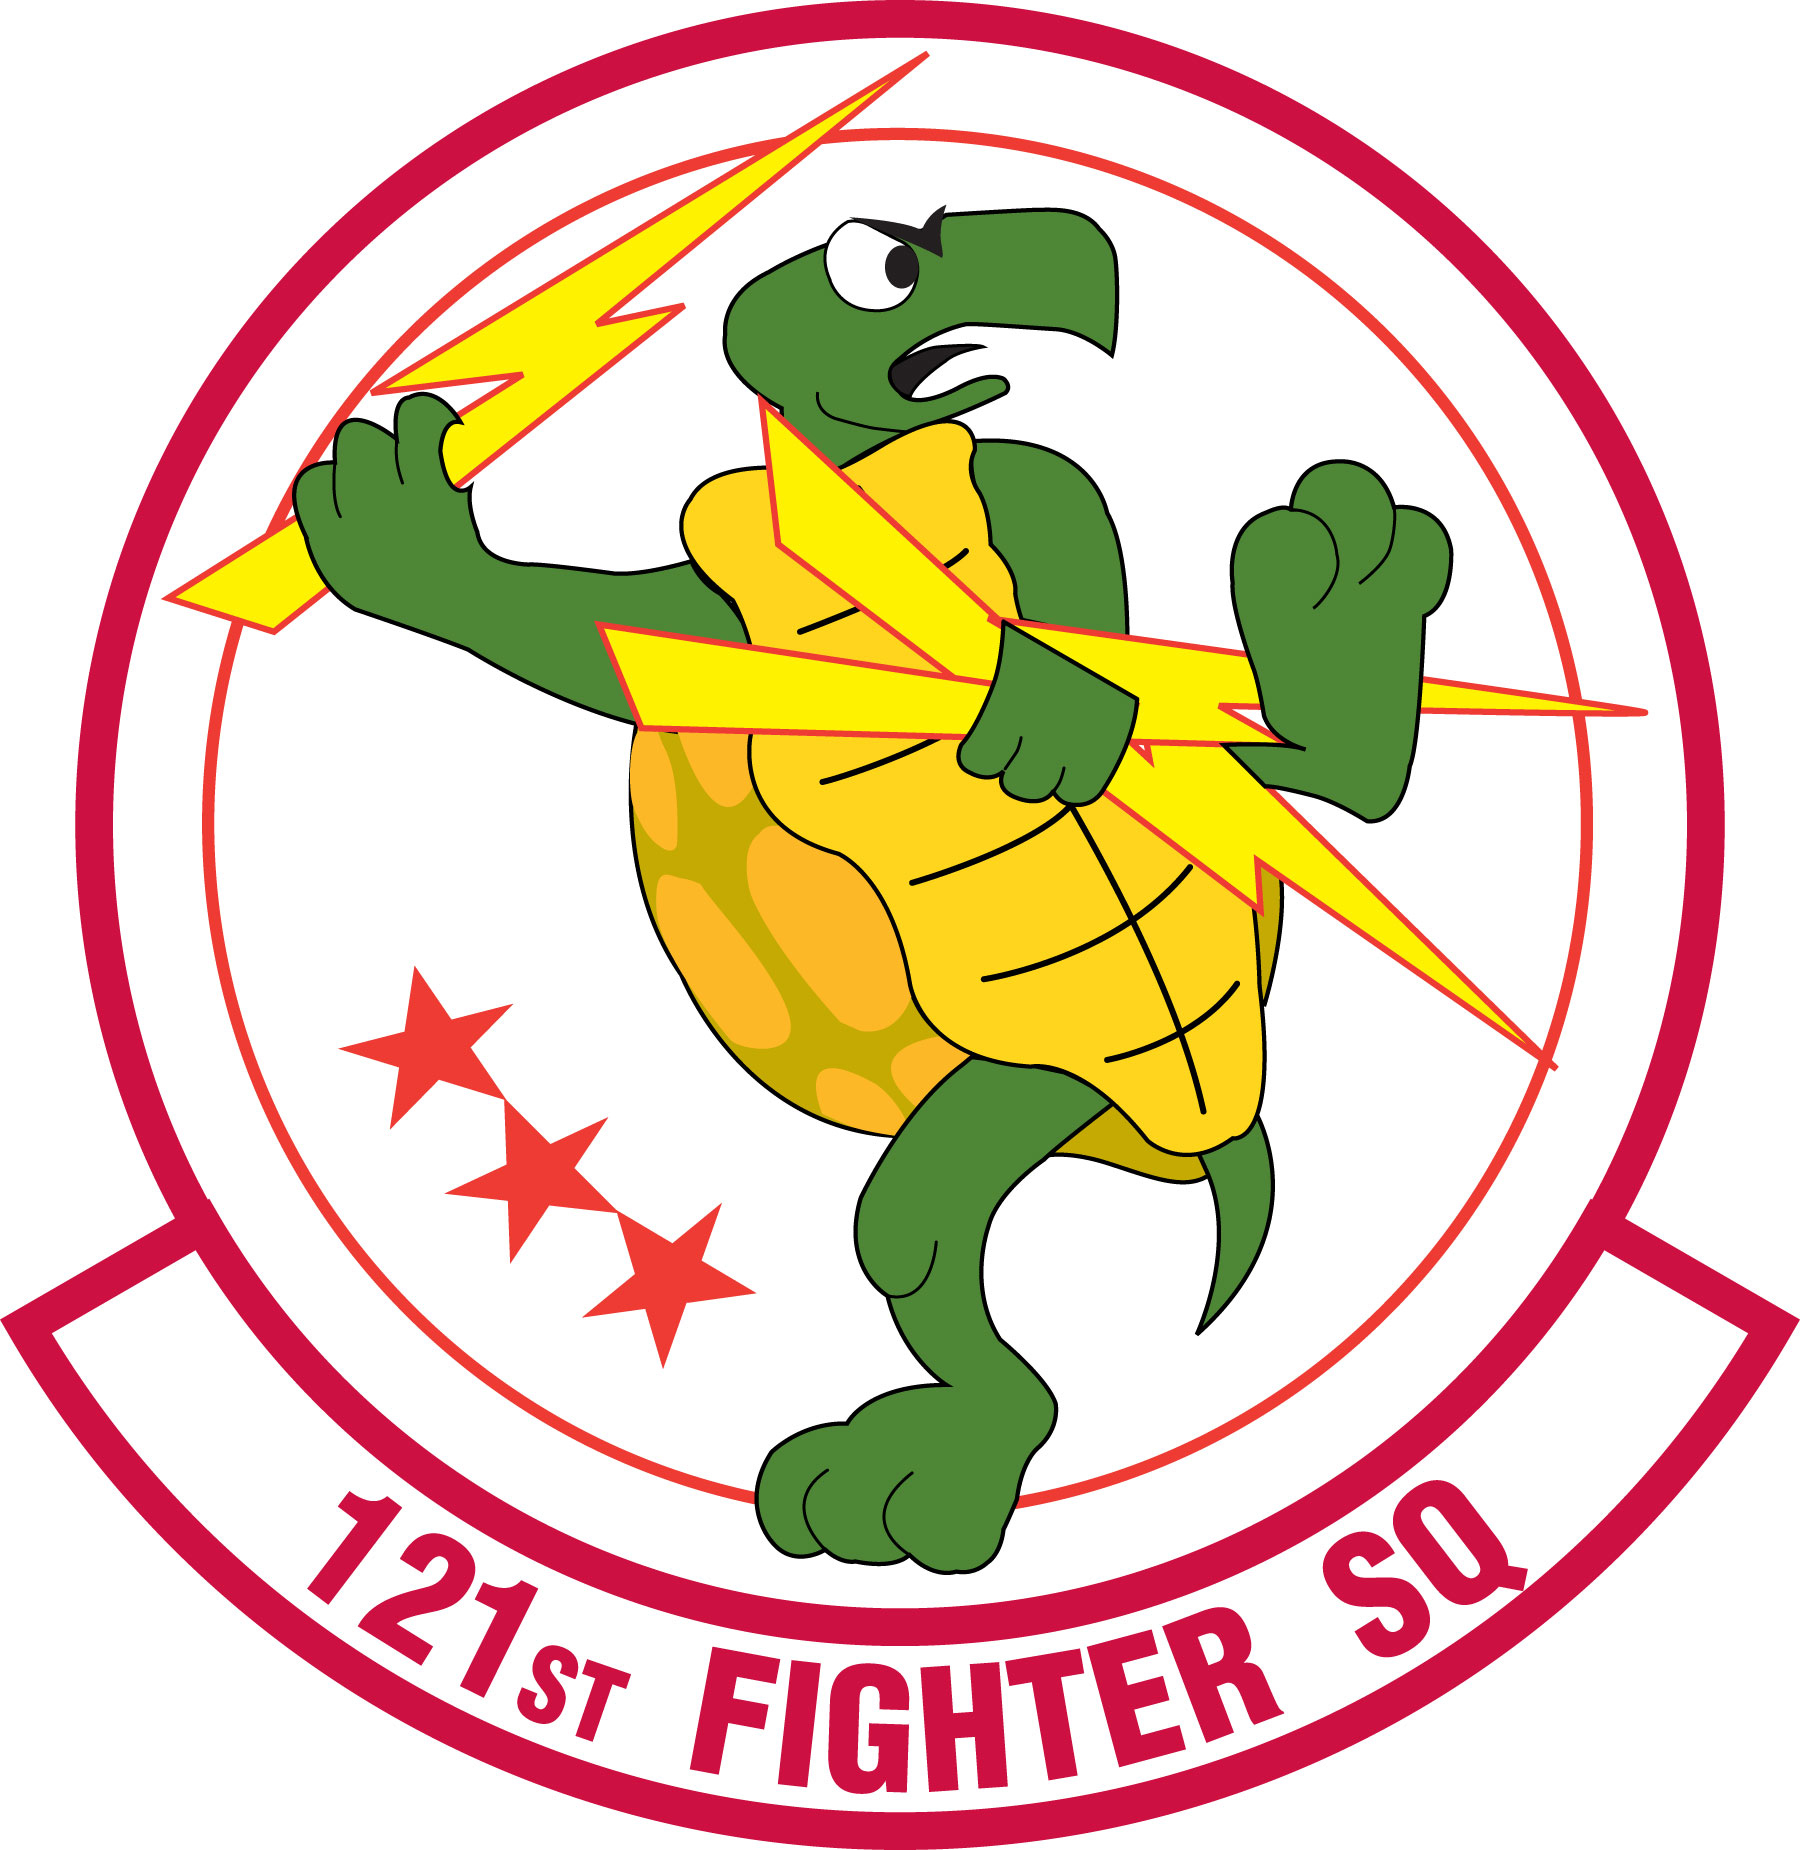 Fighter Squadron Logo 121st Fighter Squadron Emblem